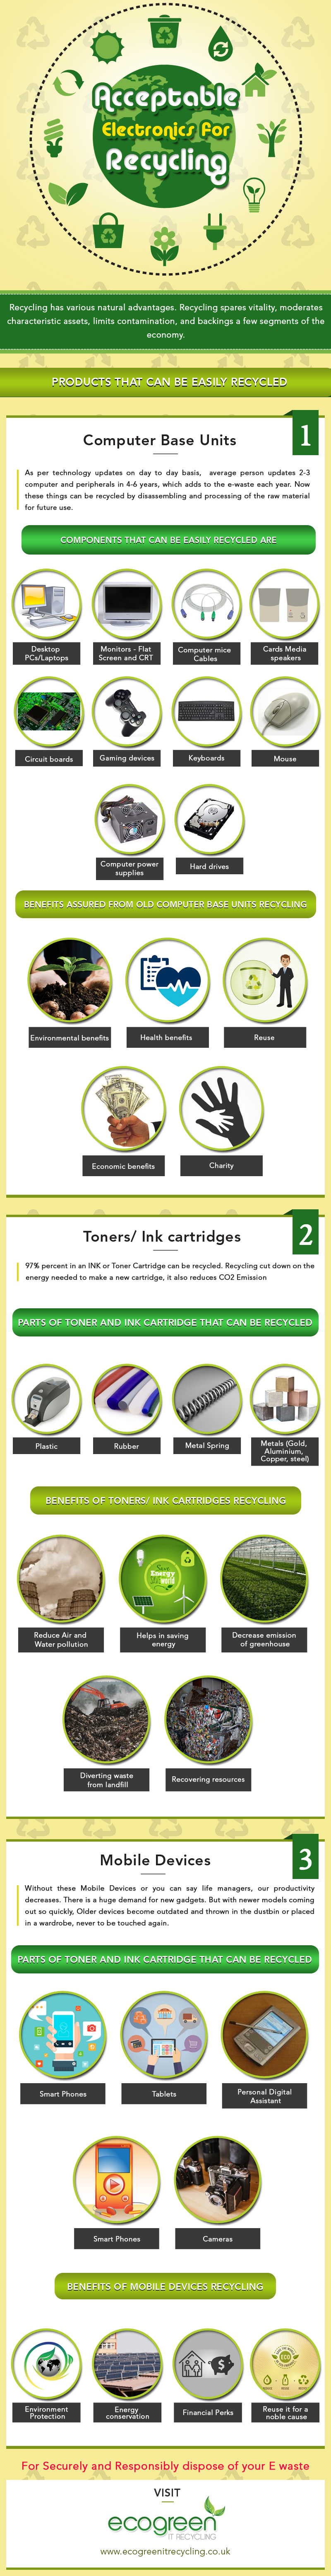 Acceptable-Electronics-For-Recycling-Infographics